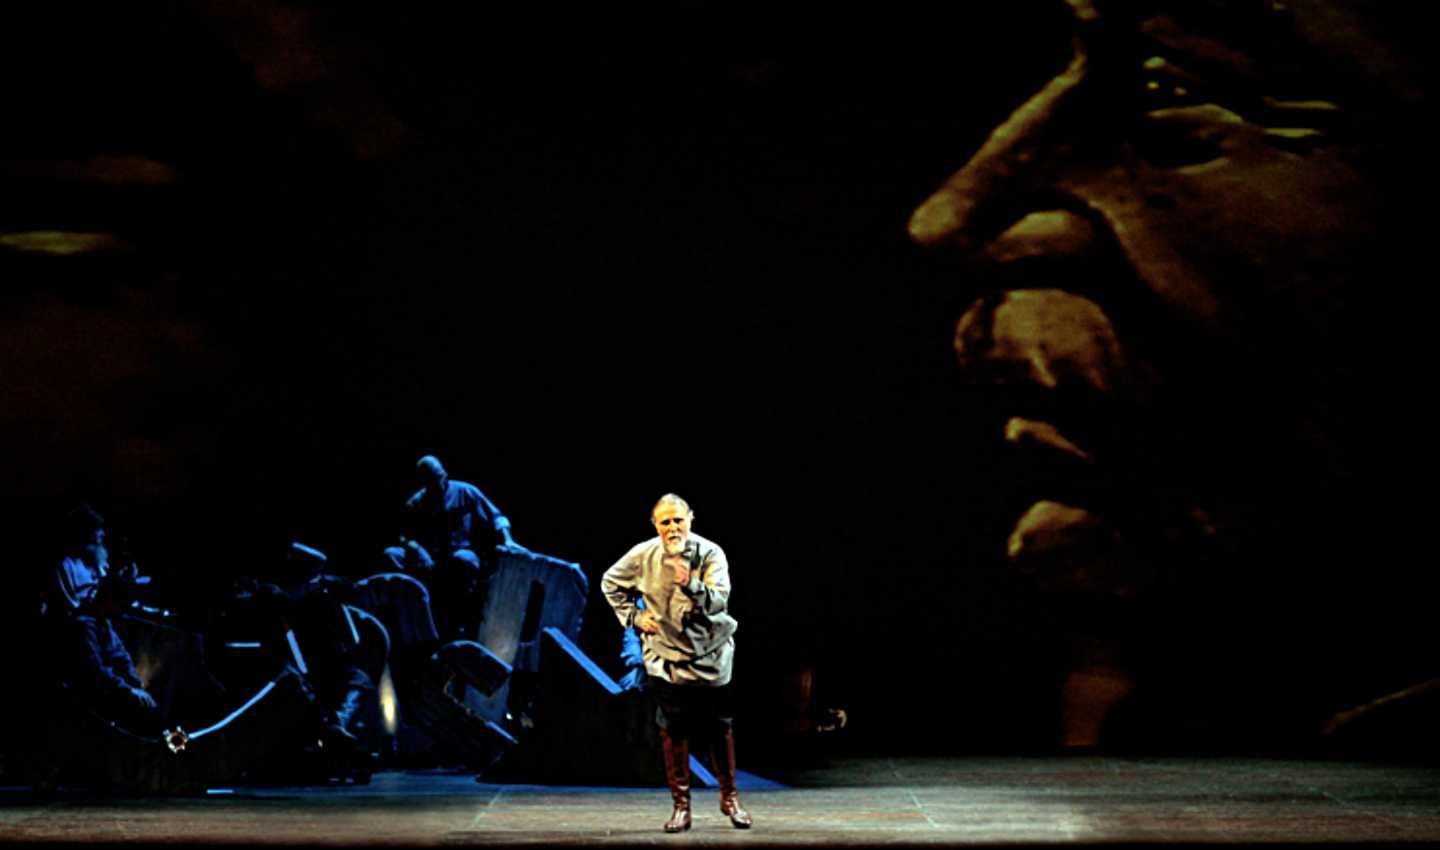 Moni Ovadia in La bella utopia, 2007